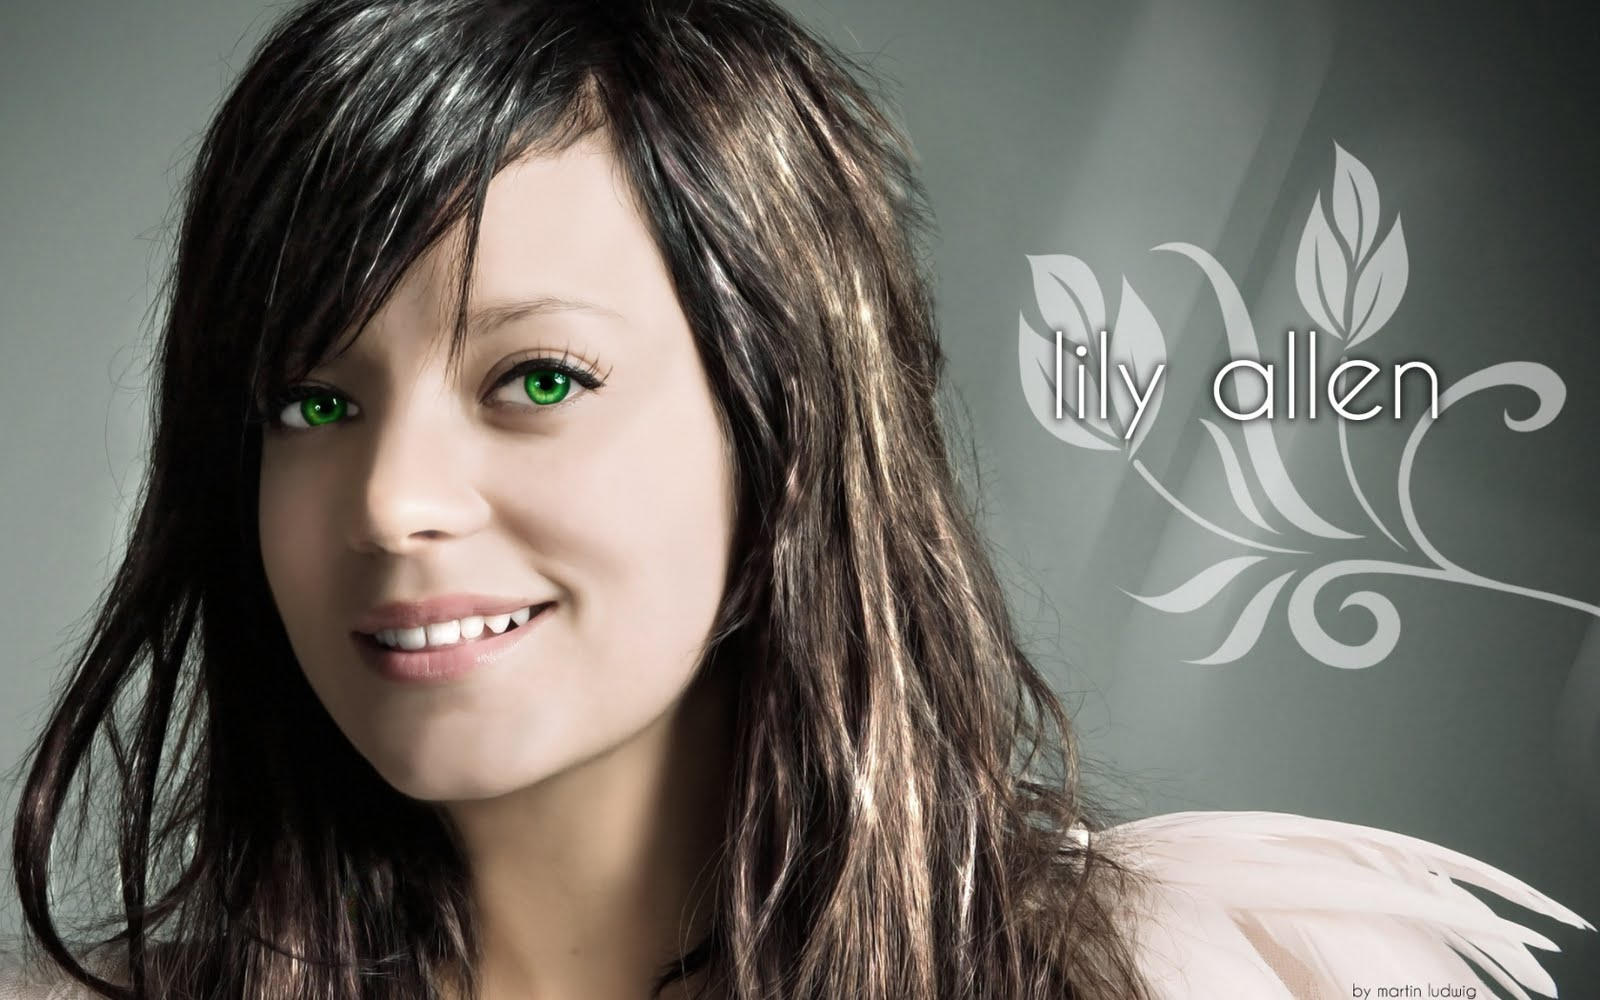 Lily Allen Lily Allen Wallpapers Lily Allen Gallery Lily Allen Gallery